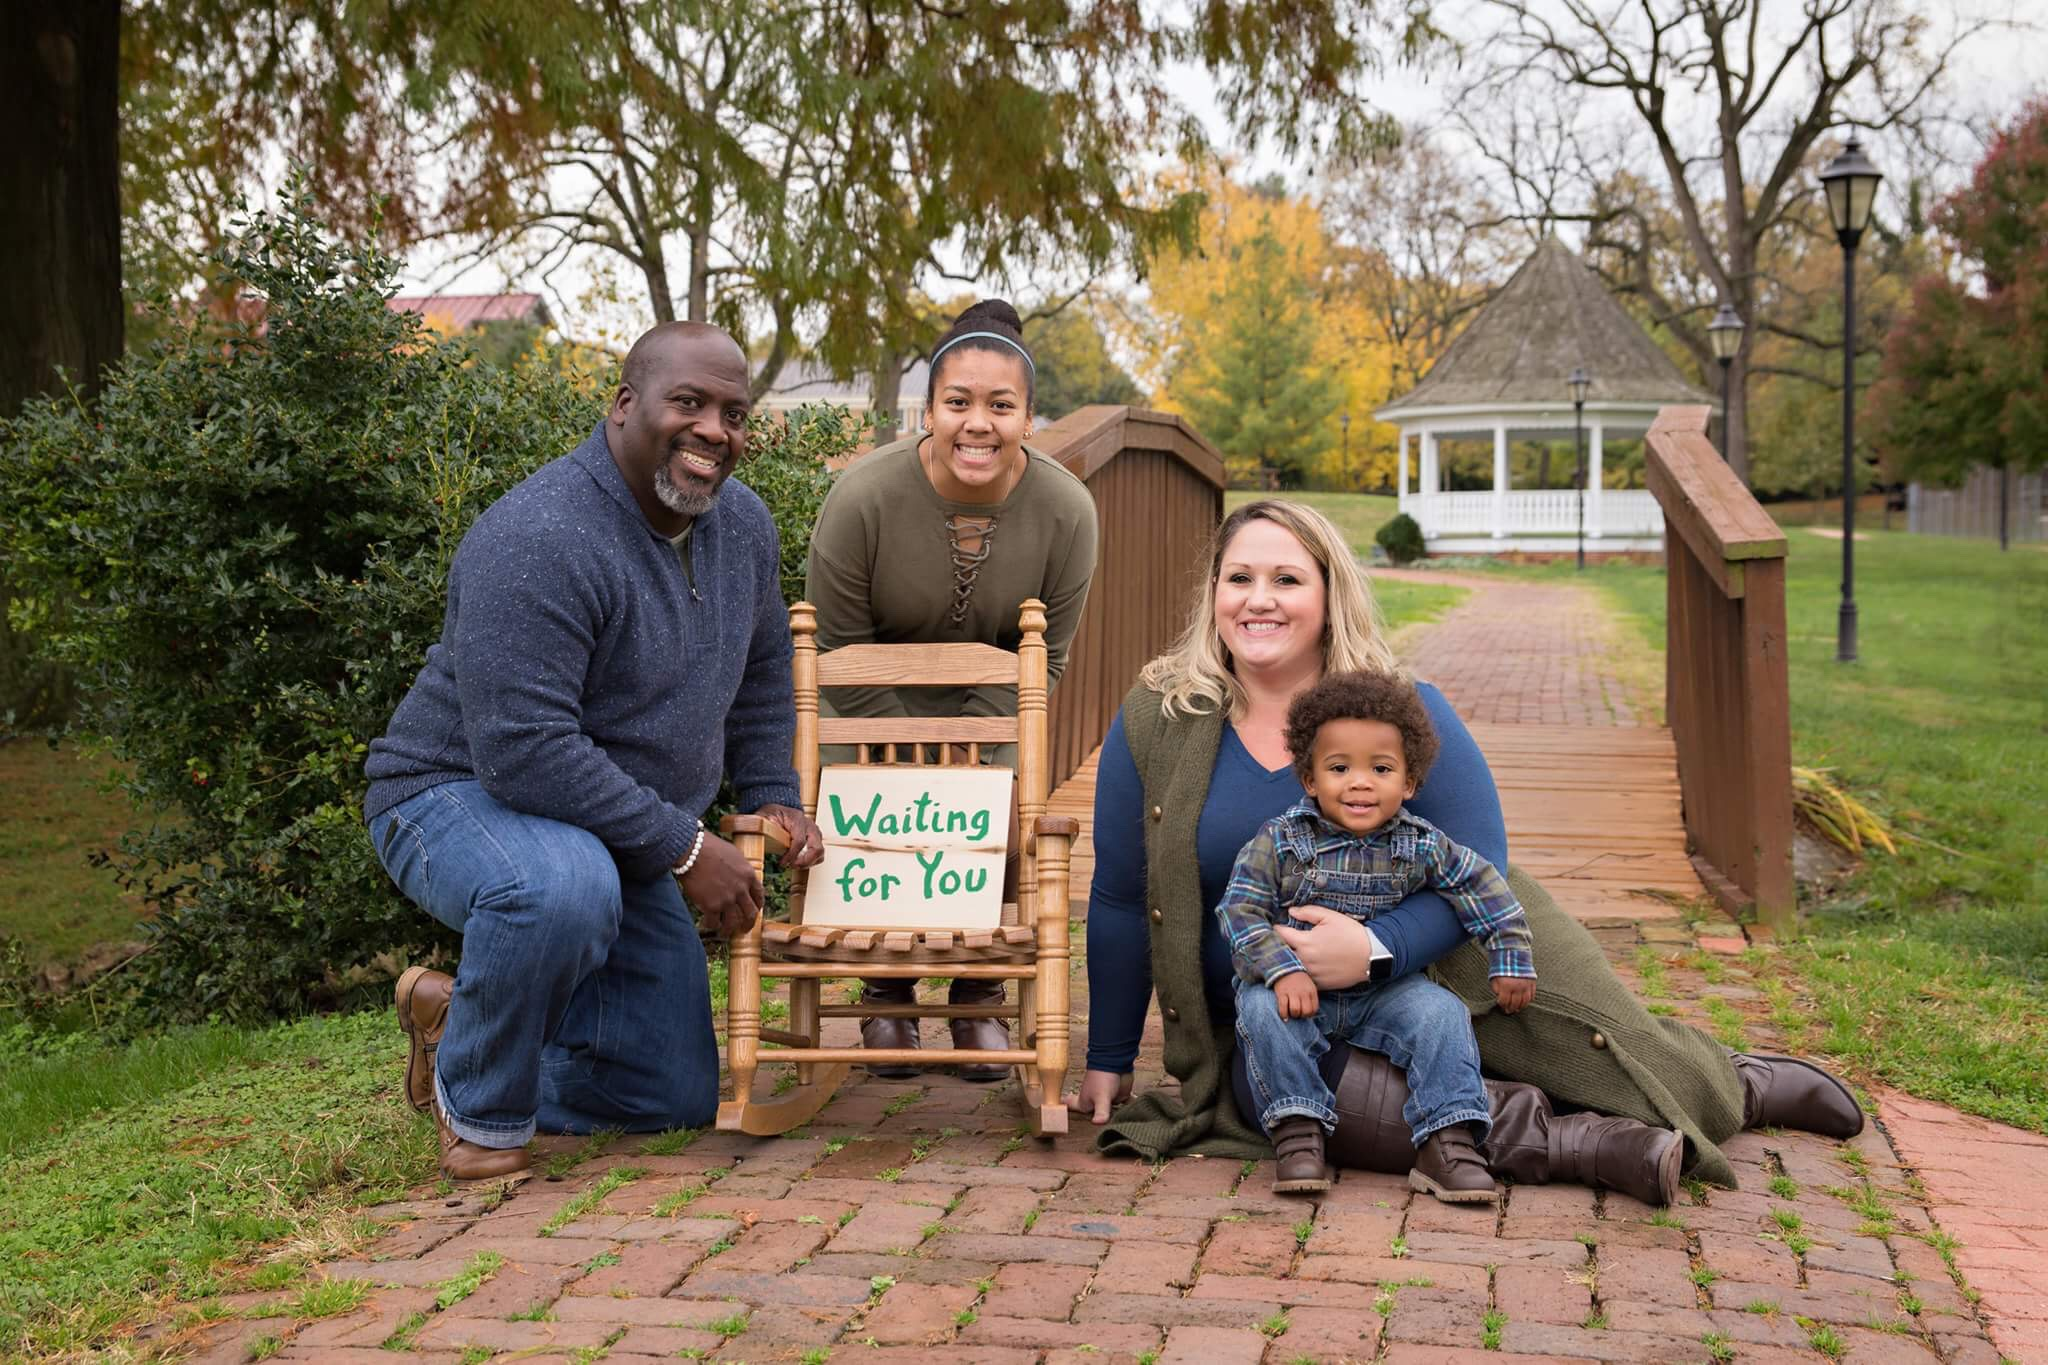 Washington DC family of four praying to adopt a child